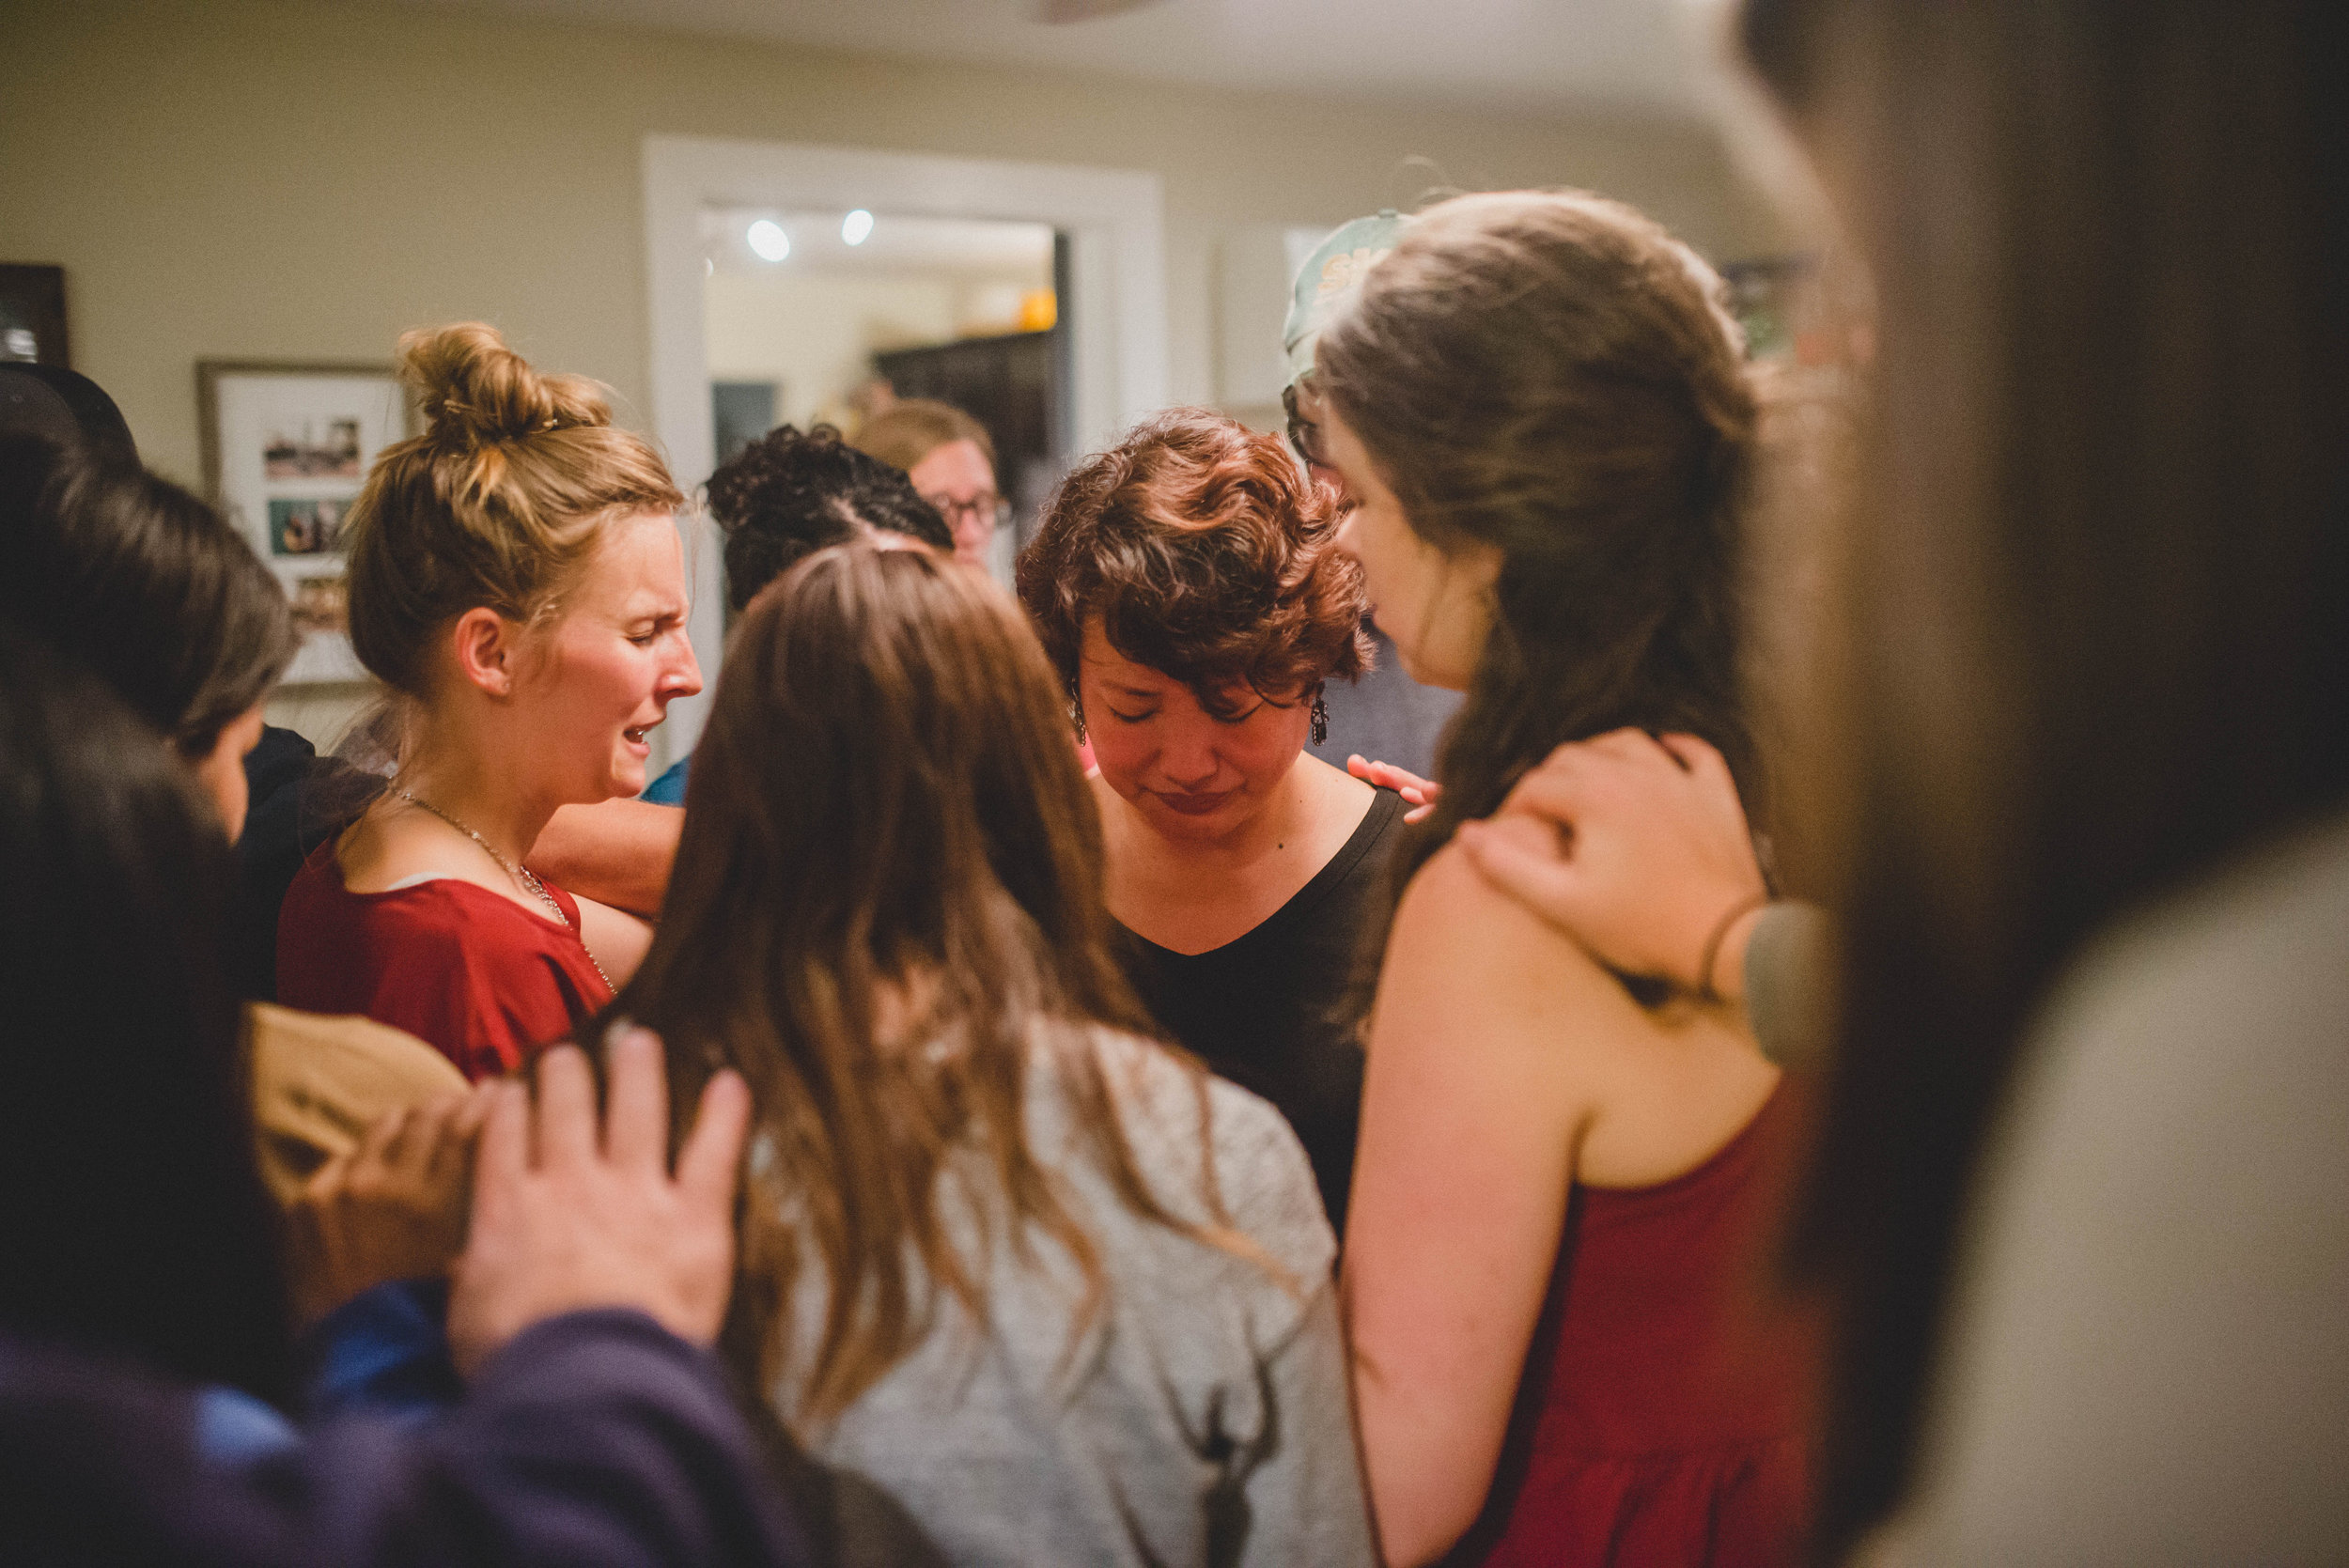 The participants in our organization pray regularly for our staff in India. We were blessed to have a time when we could pray with and for Rose in person. We prayed, worshipped, and had several bible studies together in the few days she was with us.